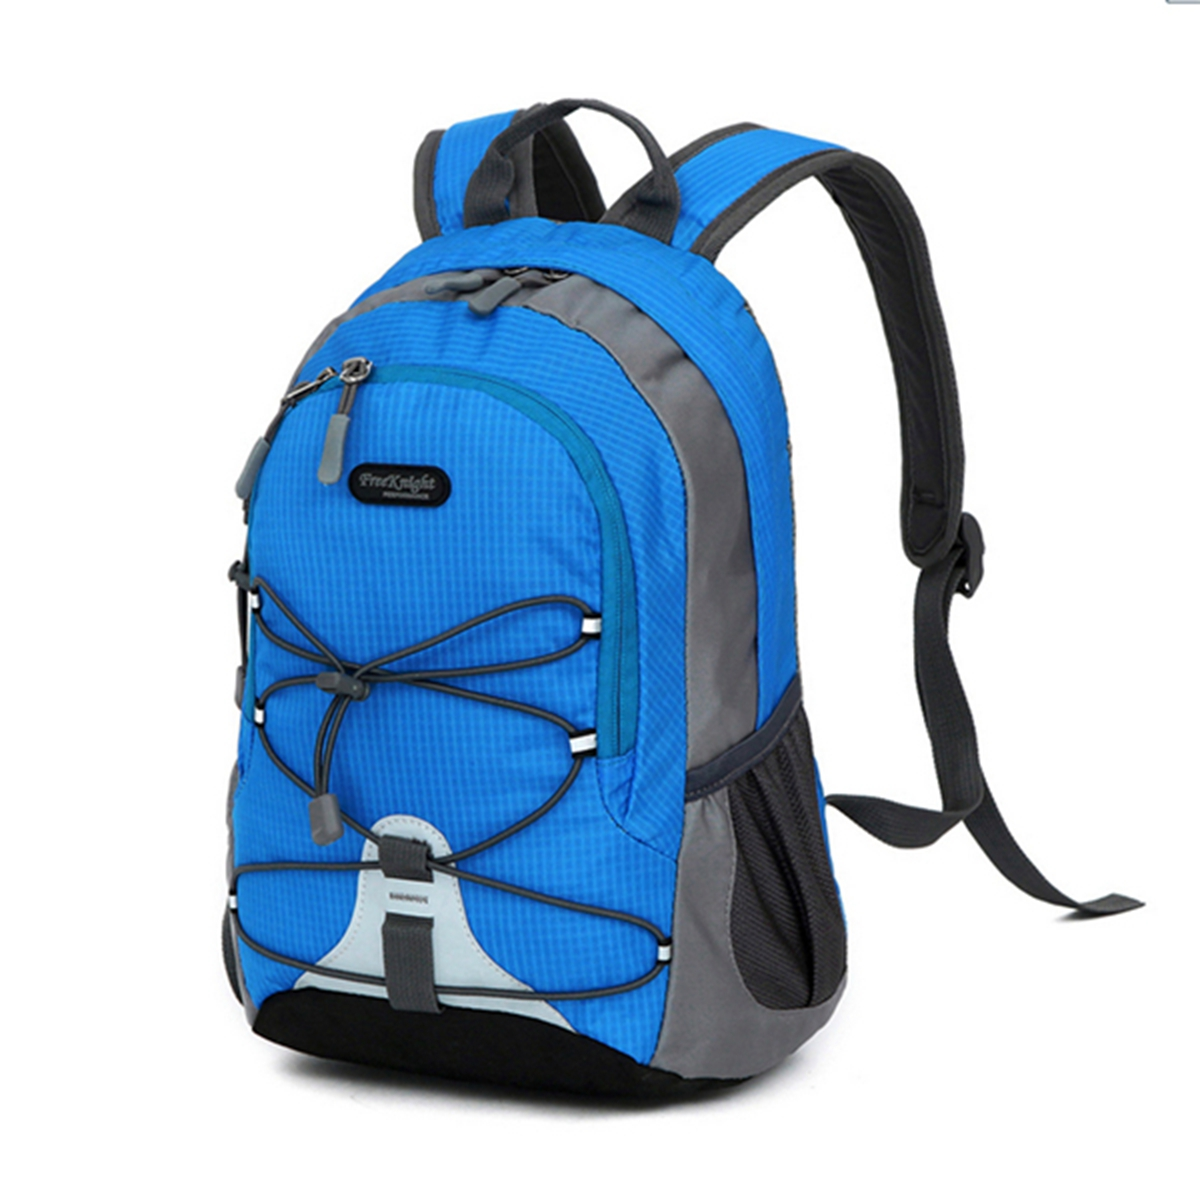 Us outdoor travel children waterproof sport backpack for Outdoor rucksack